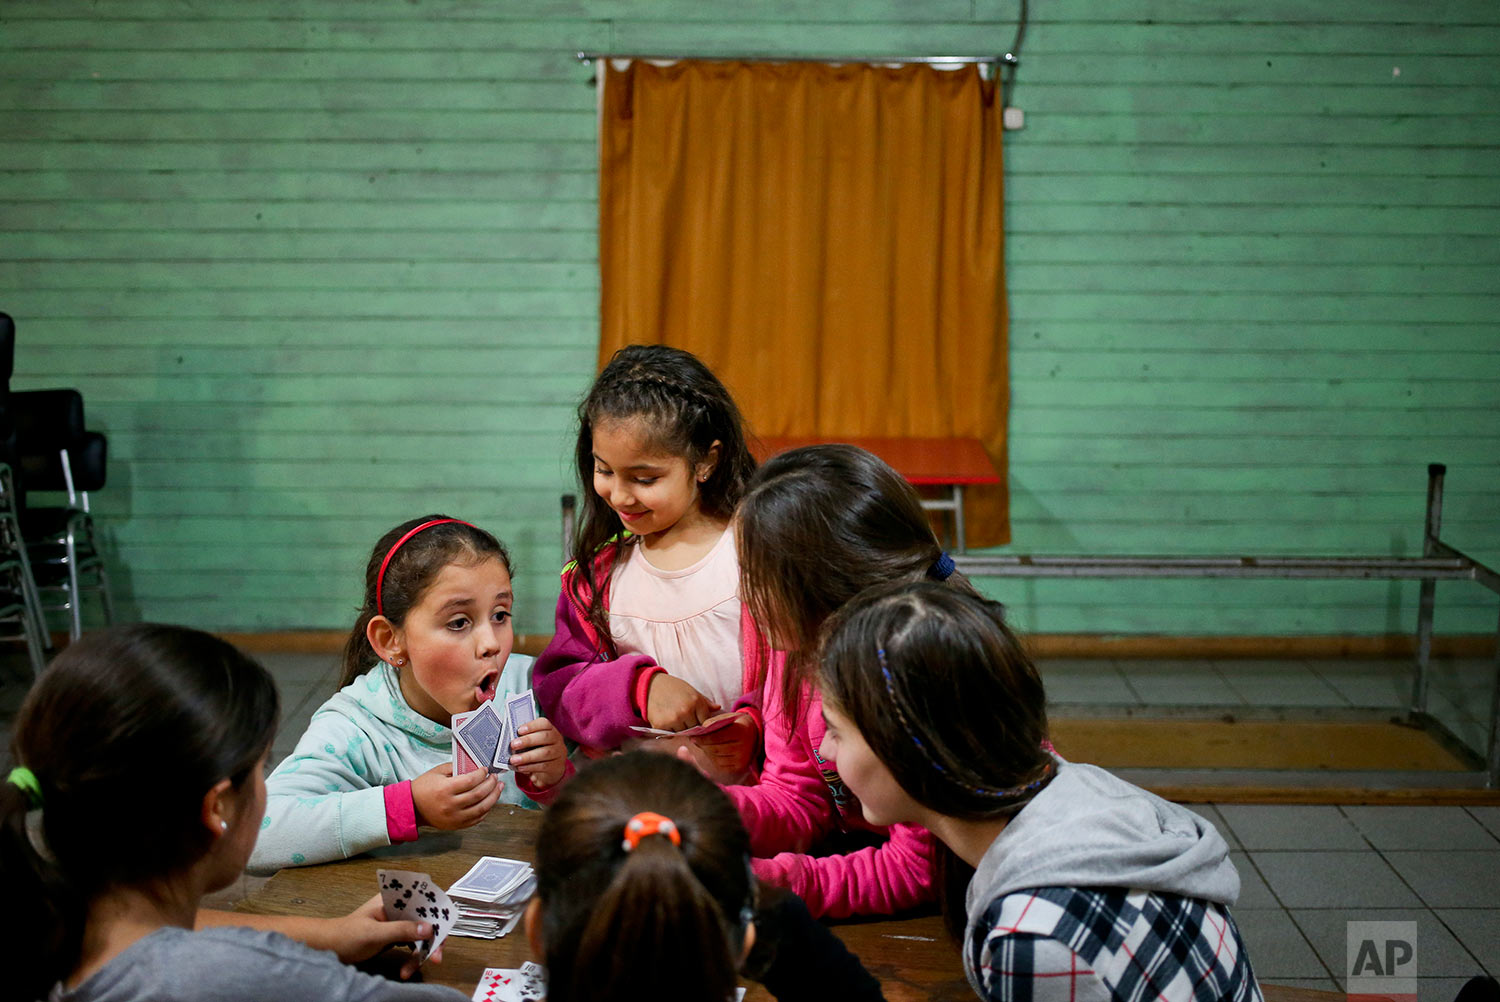 In this June 30, 2017 photo, transgender girl Selenna, left, plays cards during a break with other girls during a dance class at her community center in Santiago, Chile. Selenna's mother, Evelyn Silva, said she struggled to find a school that would accept a girl whose birth certificate still lists her as a boy, though she finally succeeded. (AP Photo/Esteban Felix)